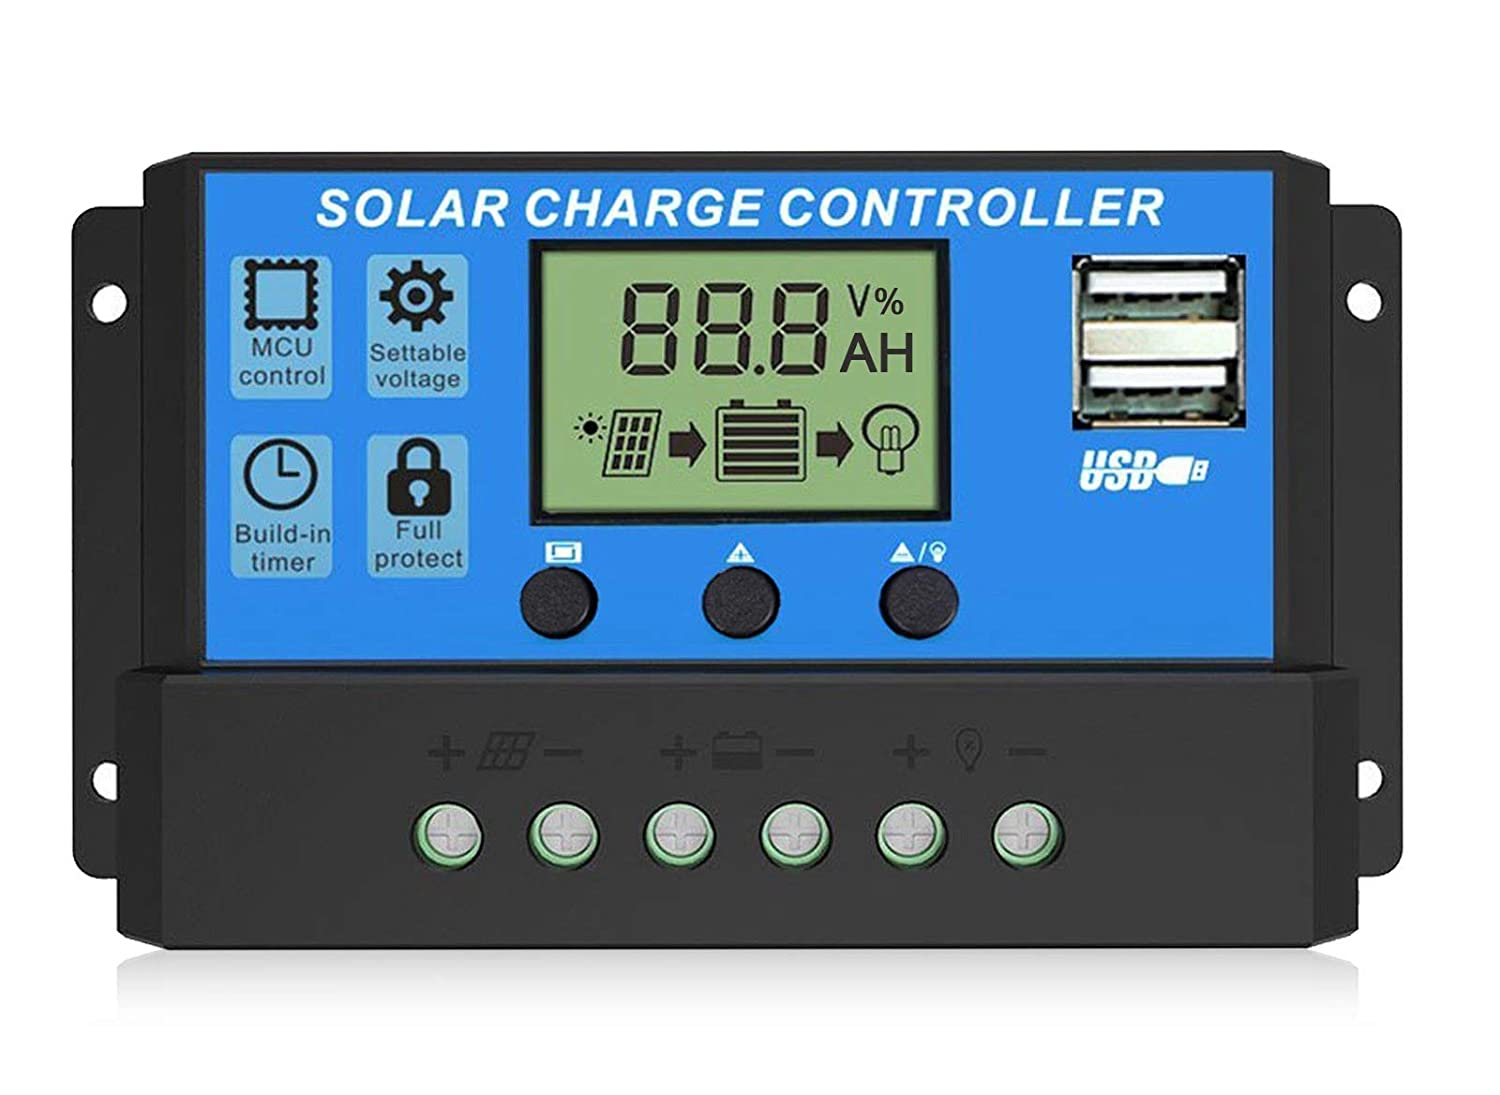 EEEKit Solar Charge Regulator, Adjustable Multi-Functional LCD Display Light Controller, With USB Dual Port Solar Panel Battery, 12Volts 24Volts 30 Amps